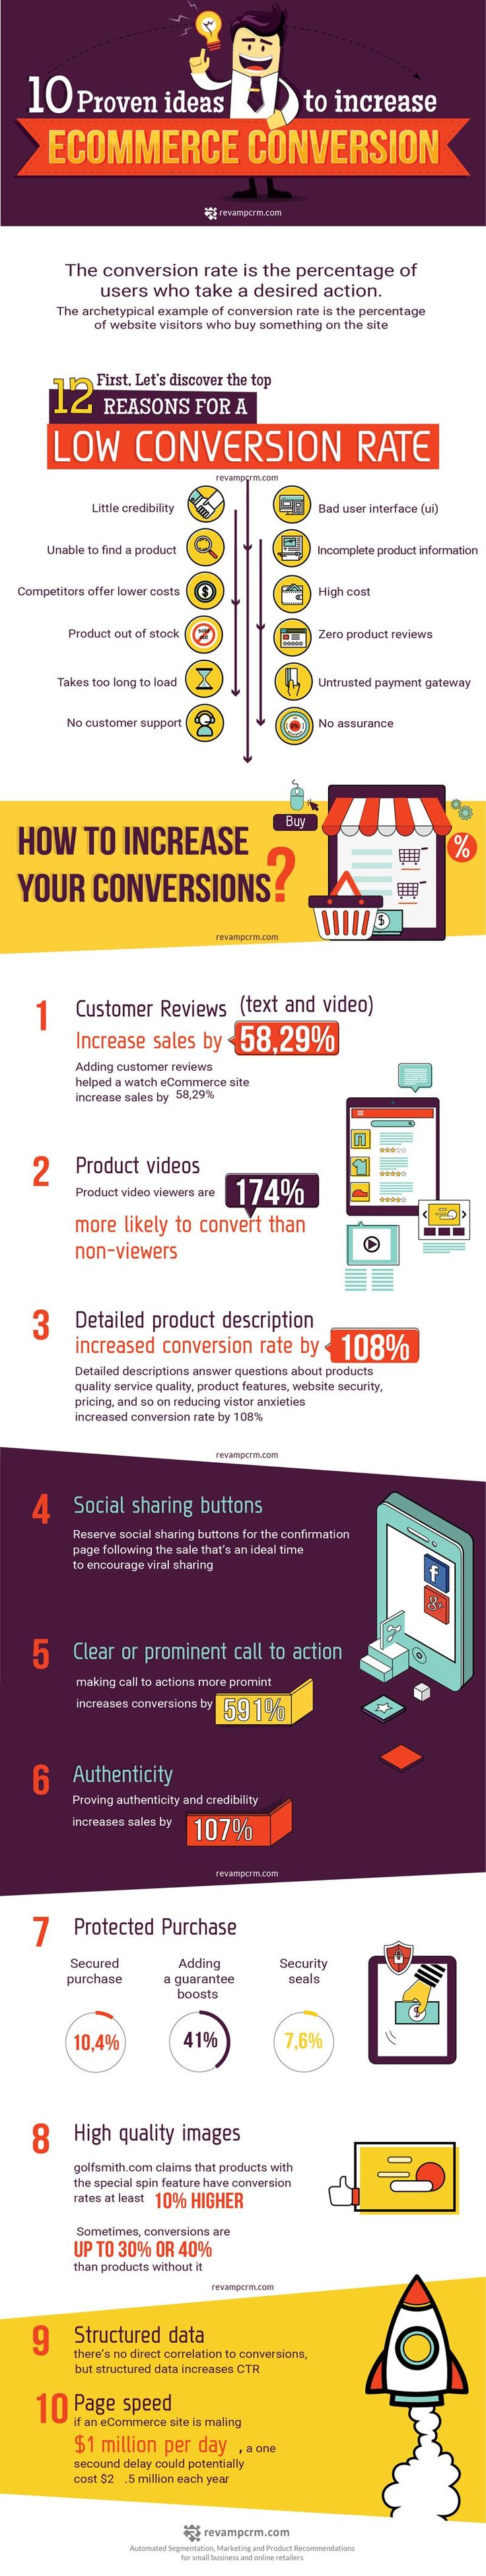 Own an Online Shop? 10 Proven Ideas to Increase Ecommerce Conversions [Infographic]